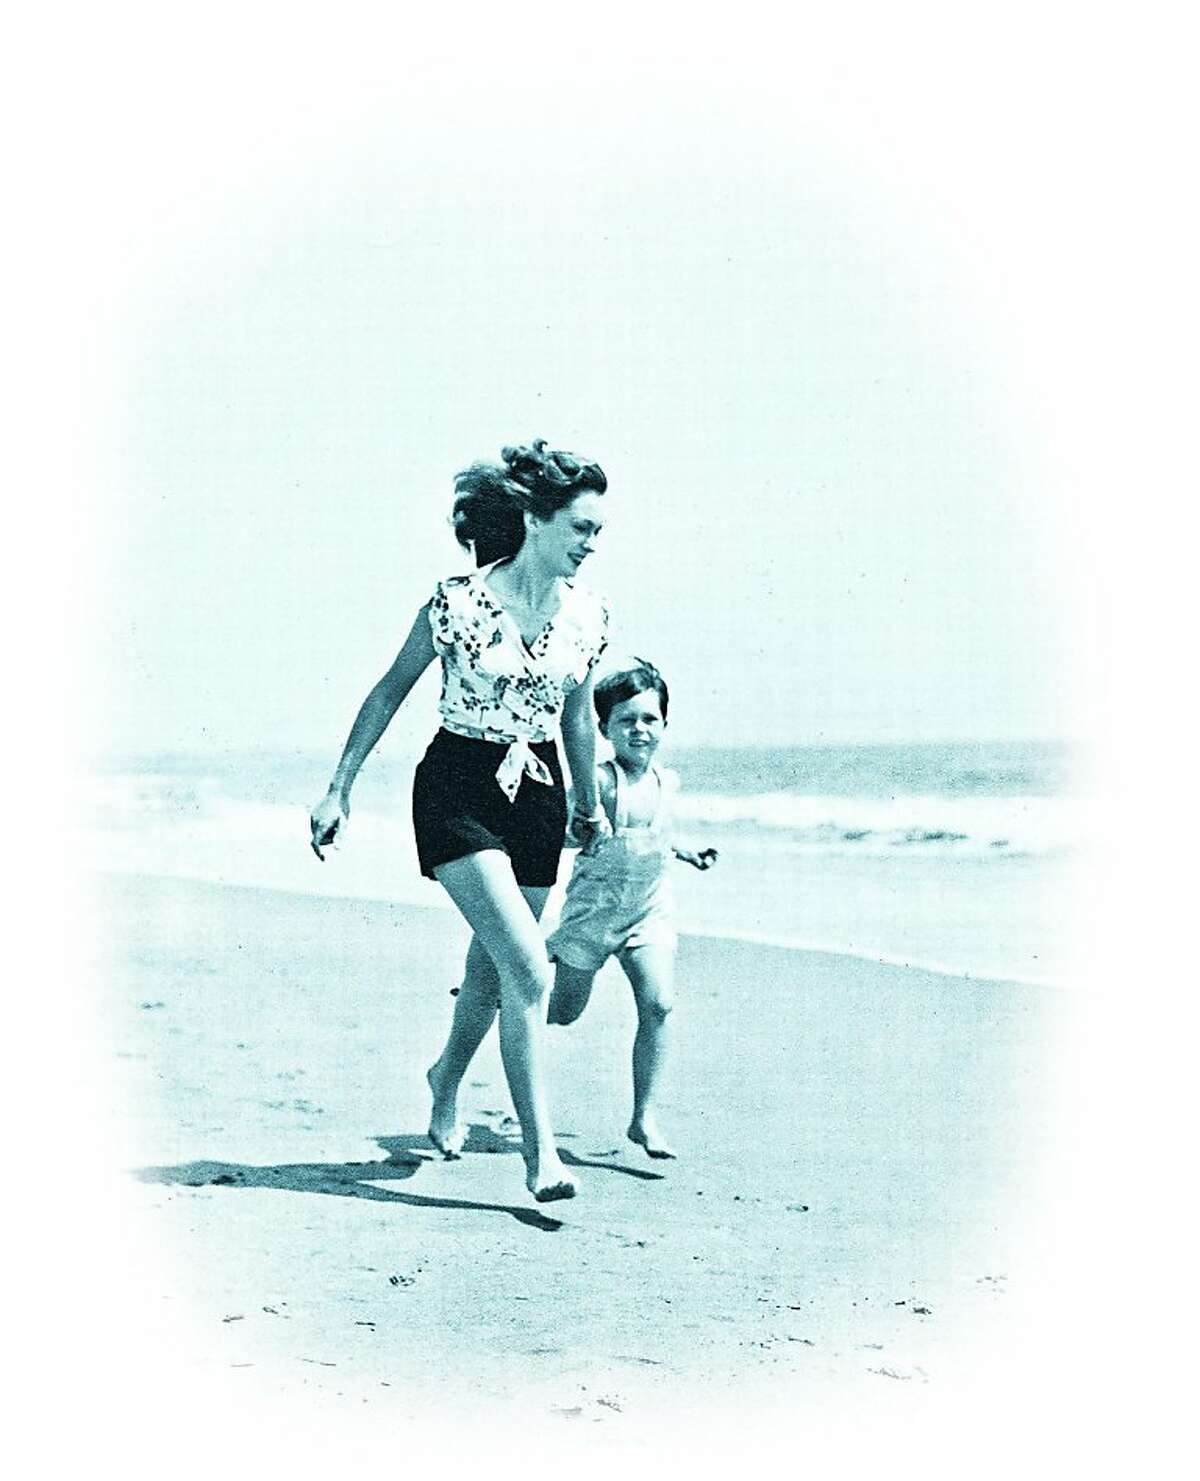 Michael Lindsay-Hogg as a child with his mother, Geraldine Fitzgerald, on the beach in Santa Monica